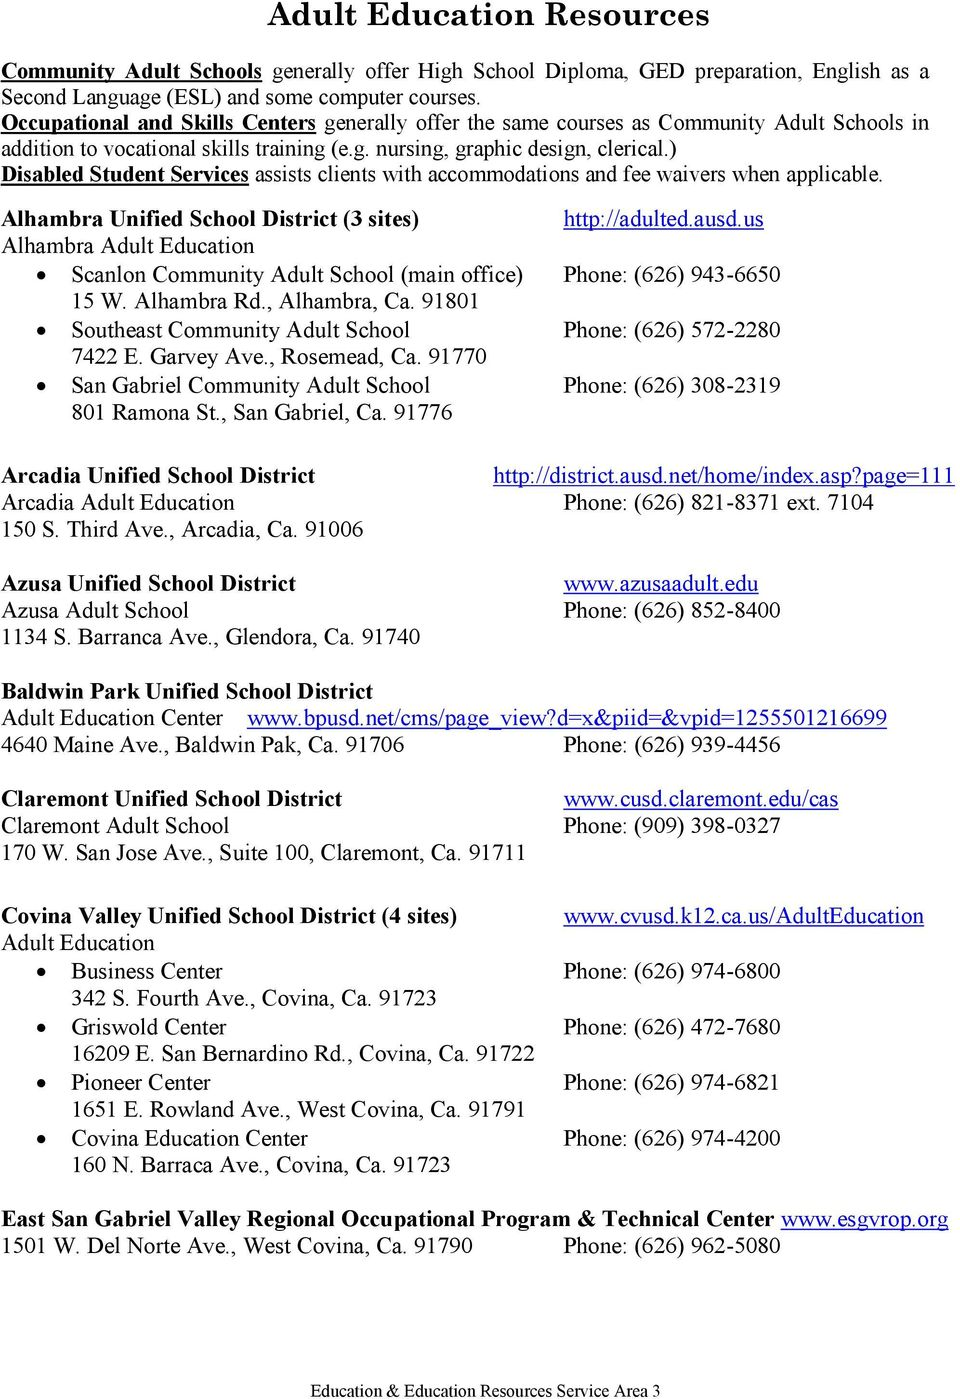 ) Disabled Student Services assists clients with accommodations and fee waivers when applicable. Alhambra Unified School District (3 sites) http://adulted.ausd.